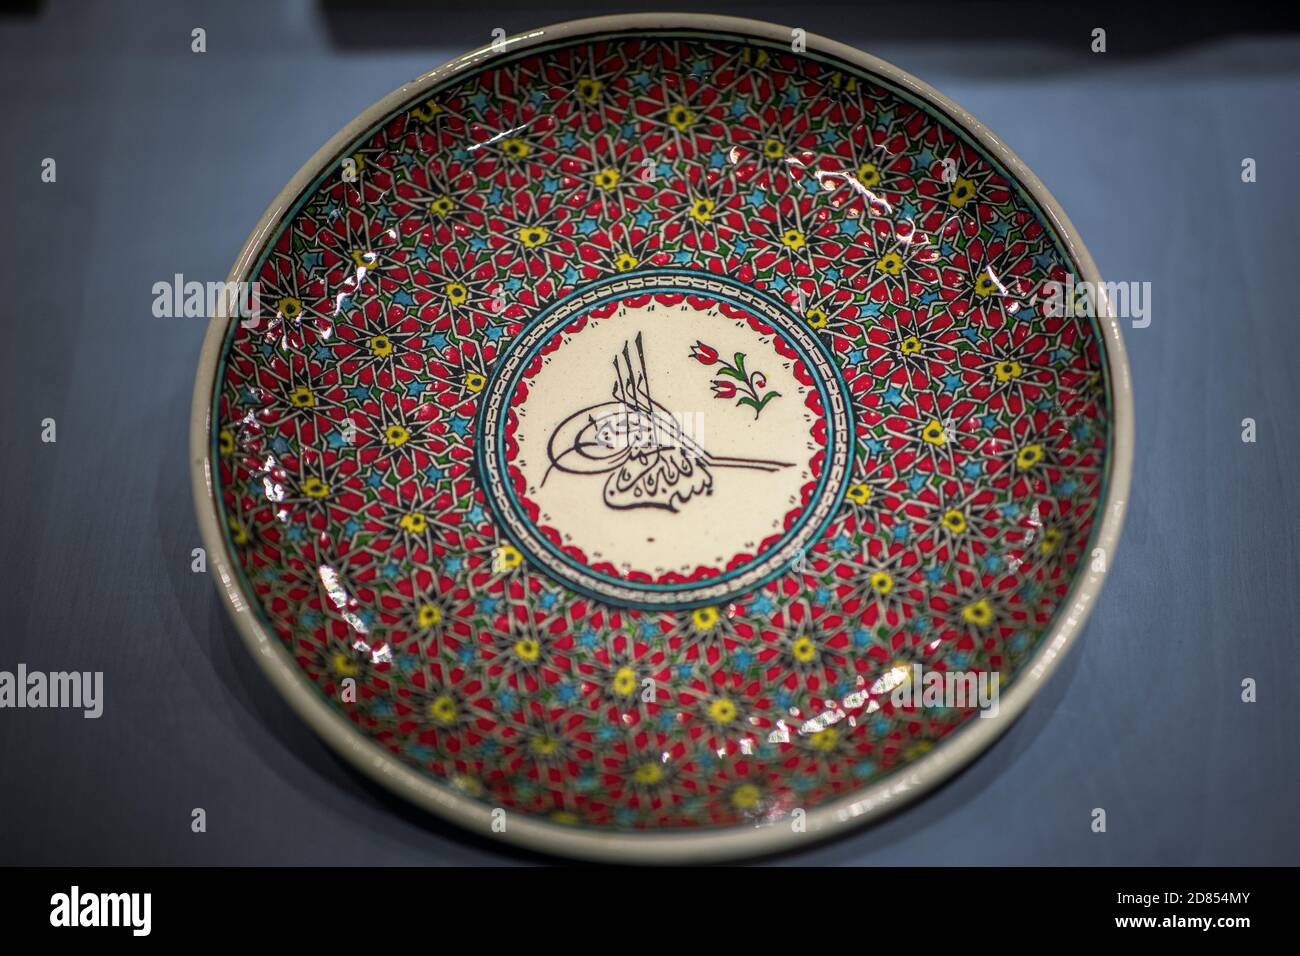 A porcelain plate from Ottoman Empire Stock Photo